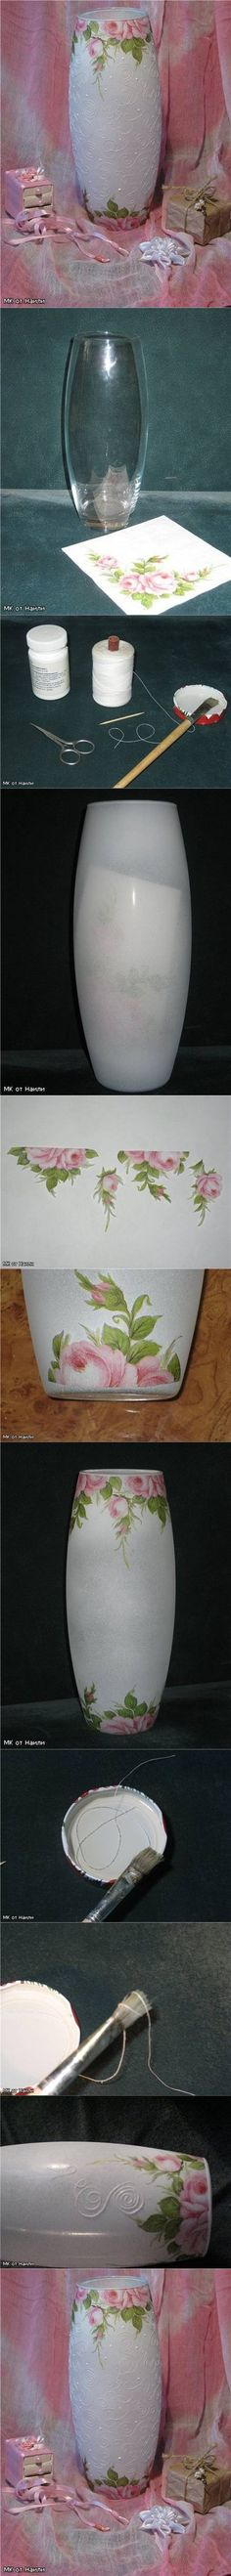 , How to, how to do, diy instructions, crafts, do it yourself, diy website, art project ideas